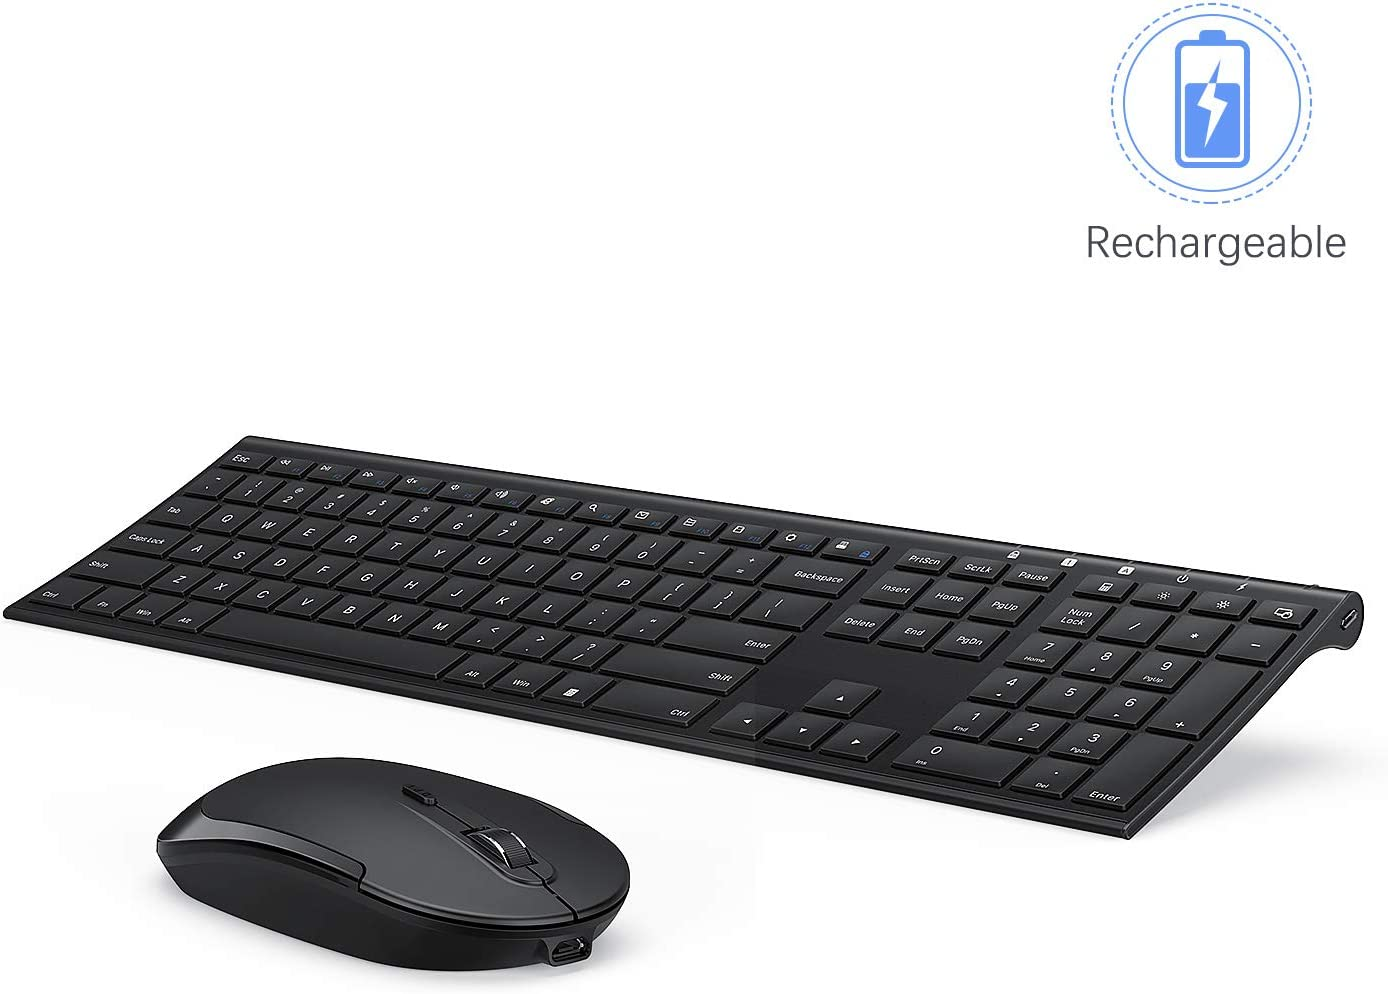 Wireless Keyboard and Mouse, Vssoplor 2.4GHz Rechargeable Compact Quiet Full-Size Keyboard and Mouse Combo with Nano USB Receiver for Windows, Laptop, PC, Notebook-Black